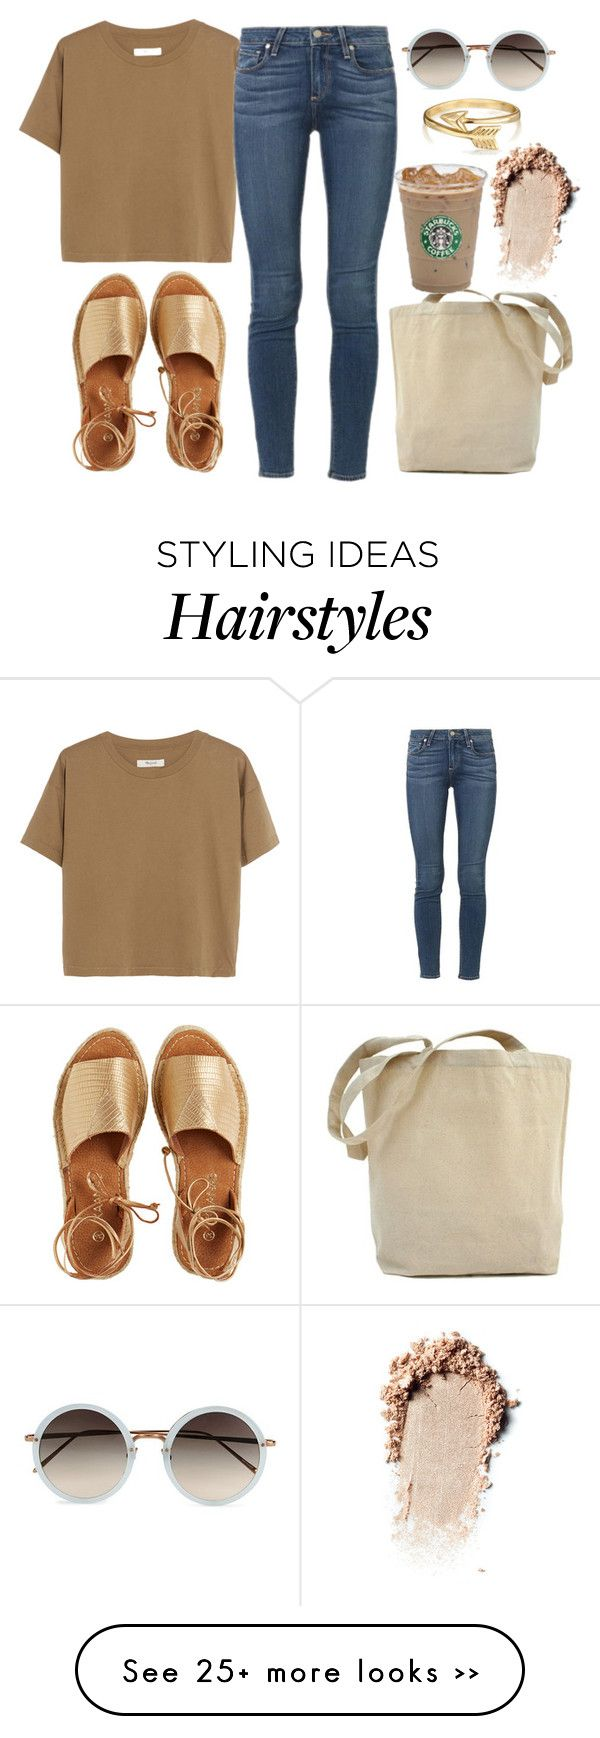 """short hair,don't care"" by redapplecigarettes on Polyvore"